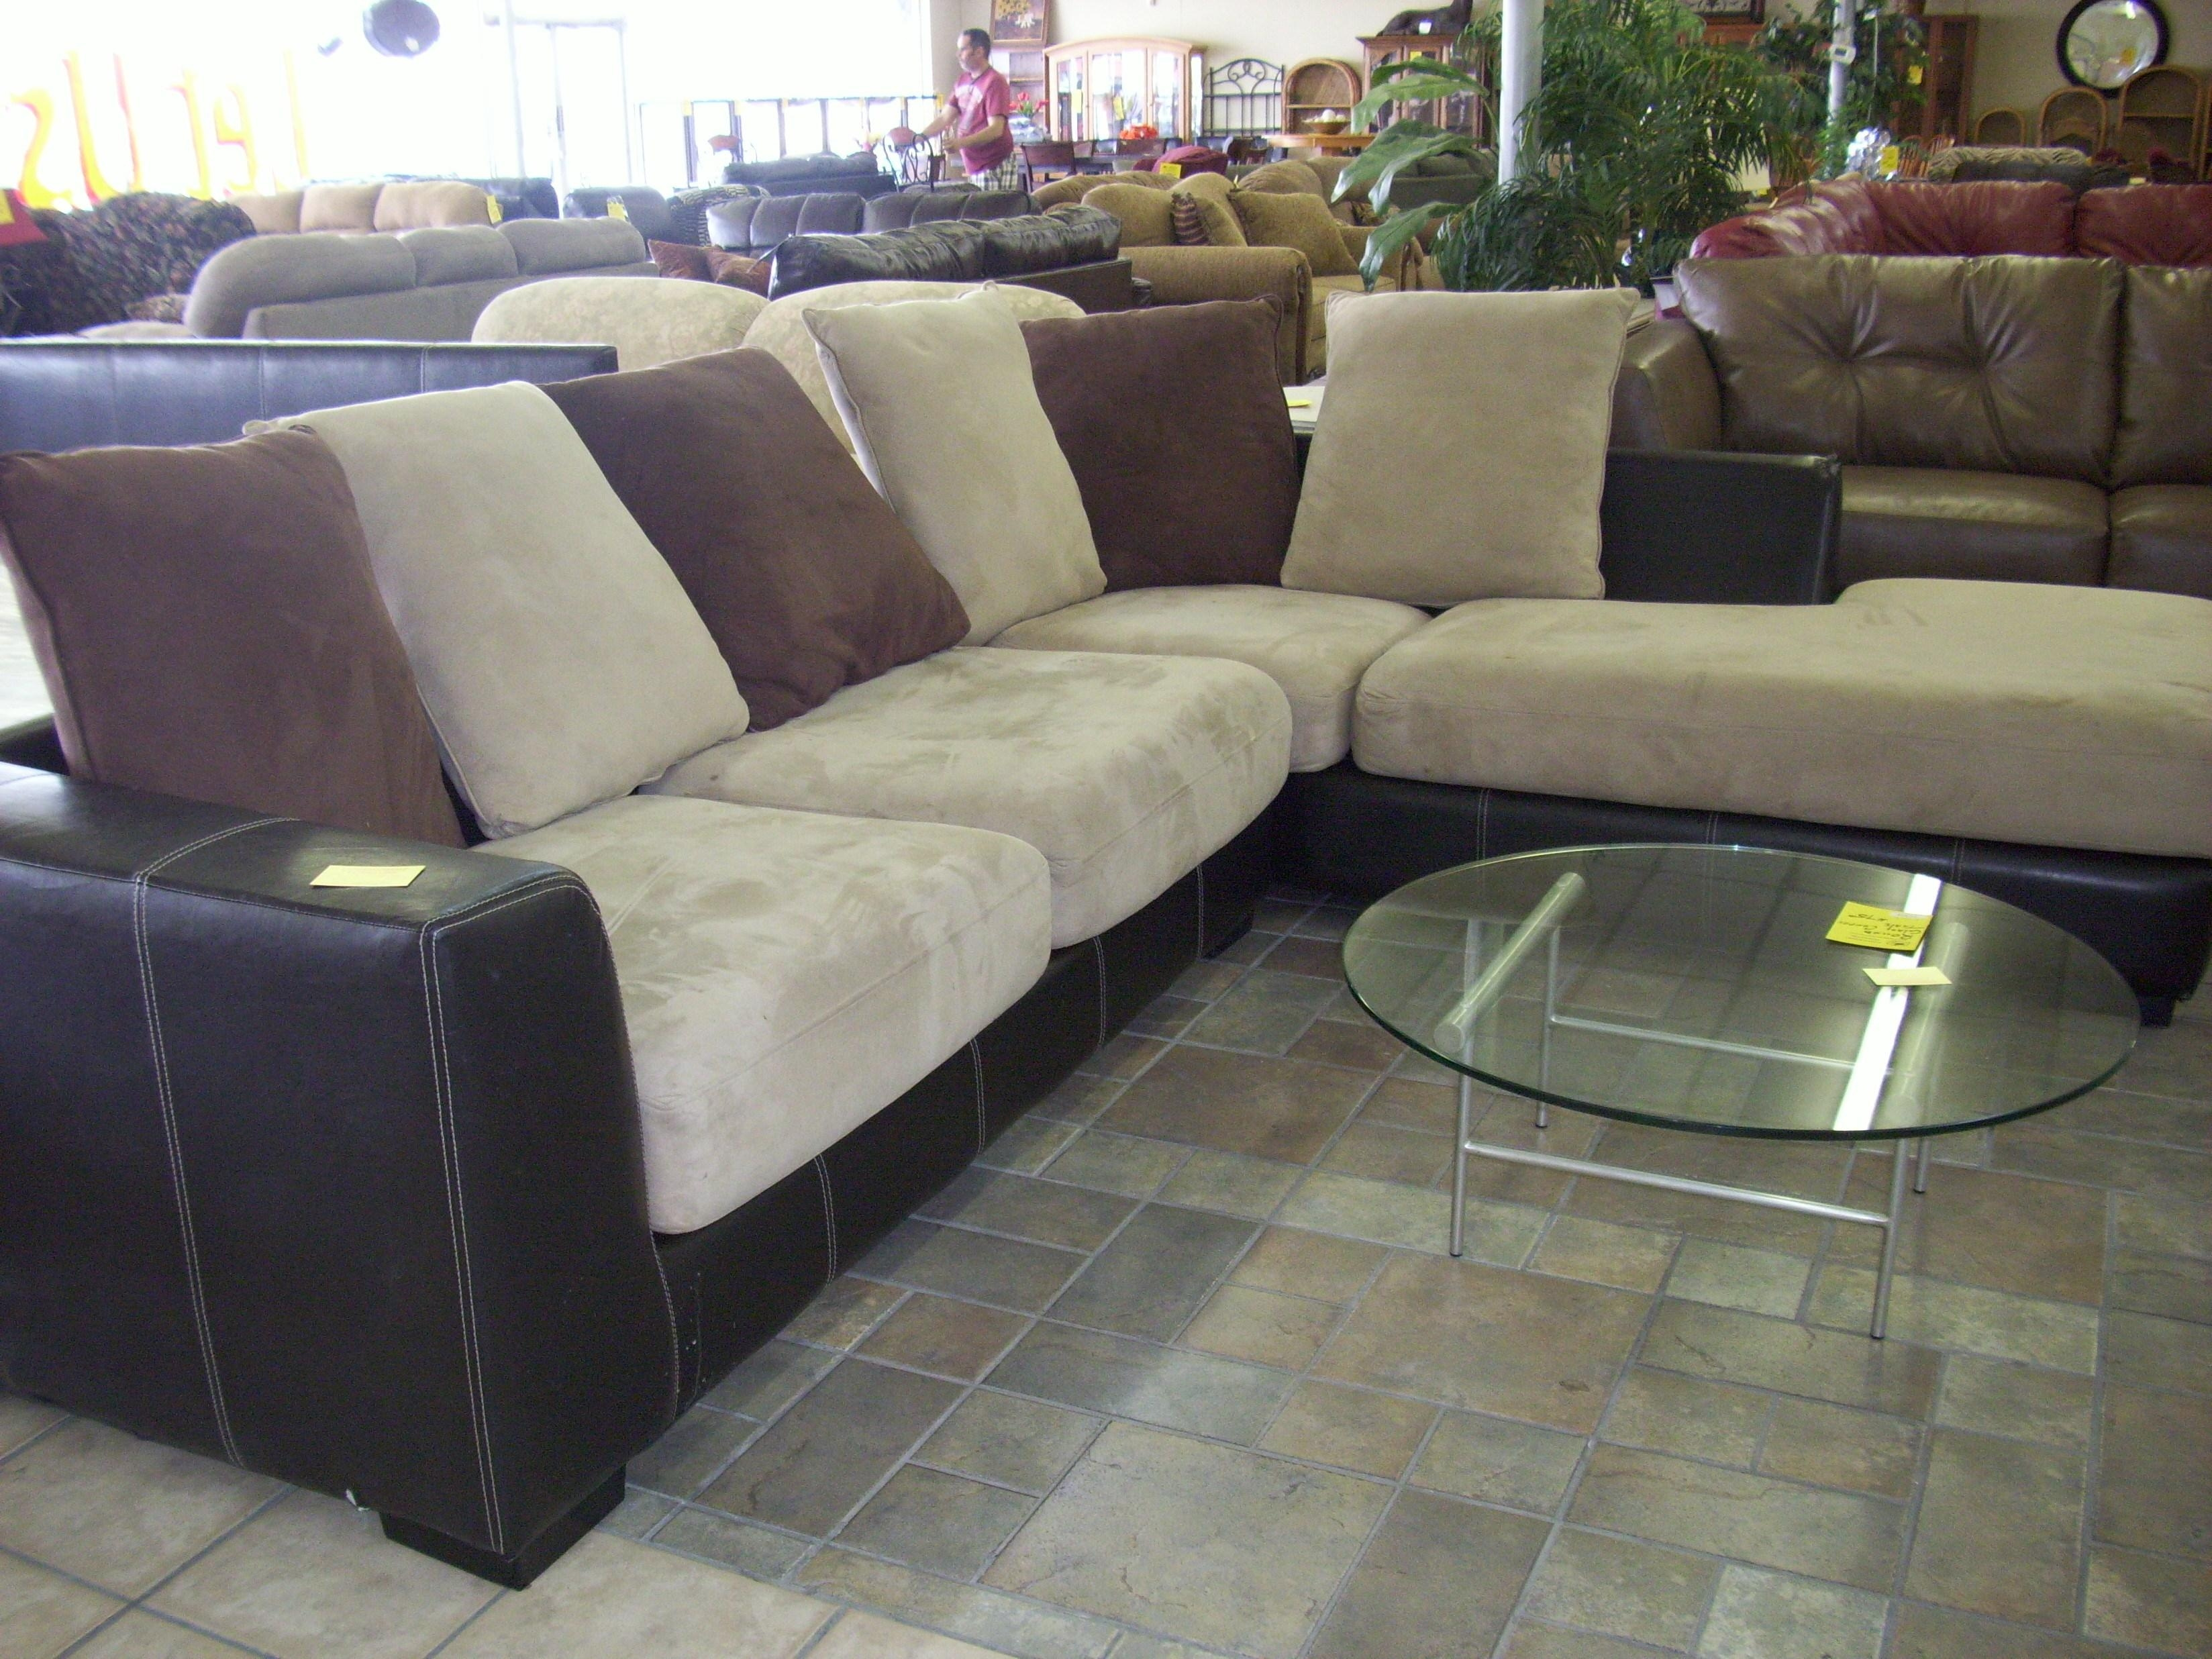 Furniture: Costco Sofa Bed | Target Futon | Euro Lounger In Euro Sofa Beds (View 16 of 20)